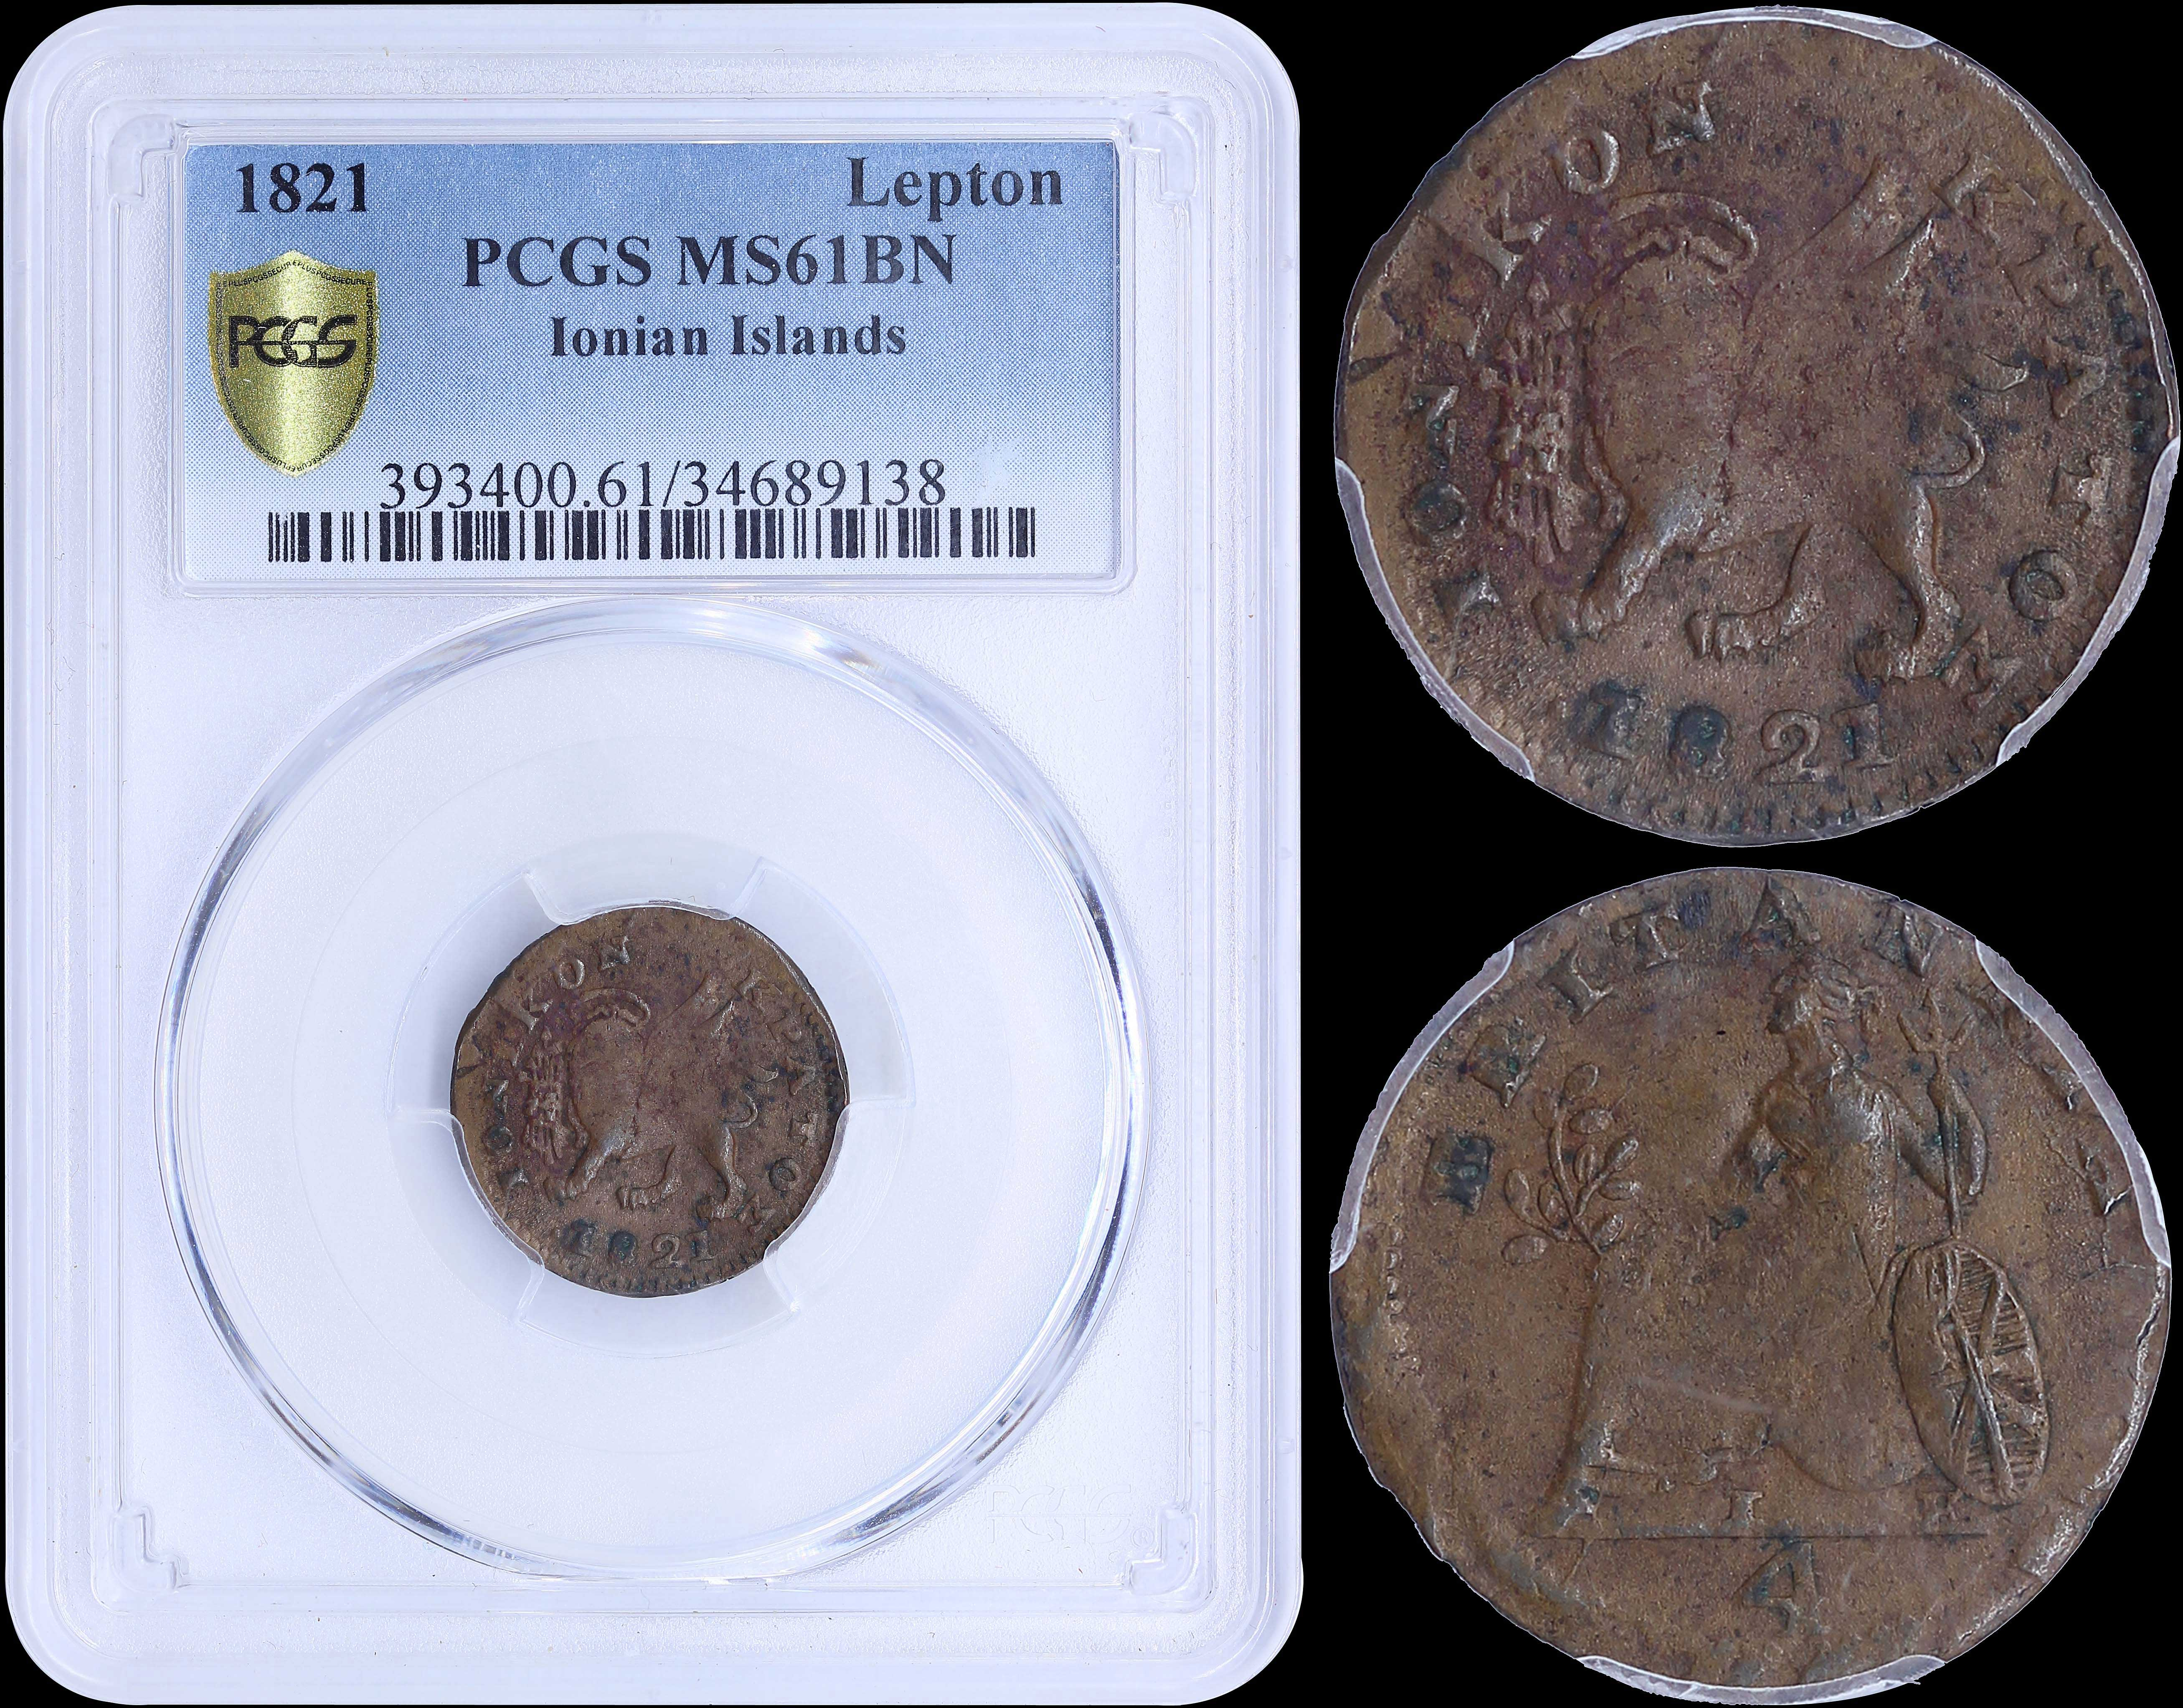 Lot 6287 - -  COINS & TOKENS ionian state -  A. Karamitsos Public & Live Internet Auction 682 (Part A) Coins, Medals & Banknotes